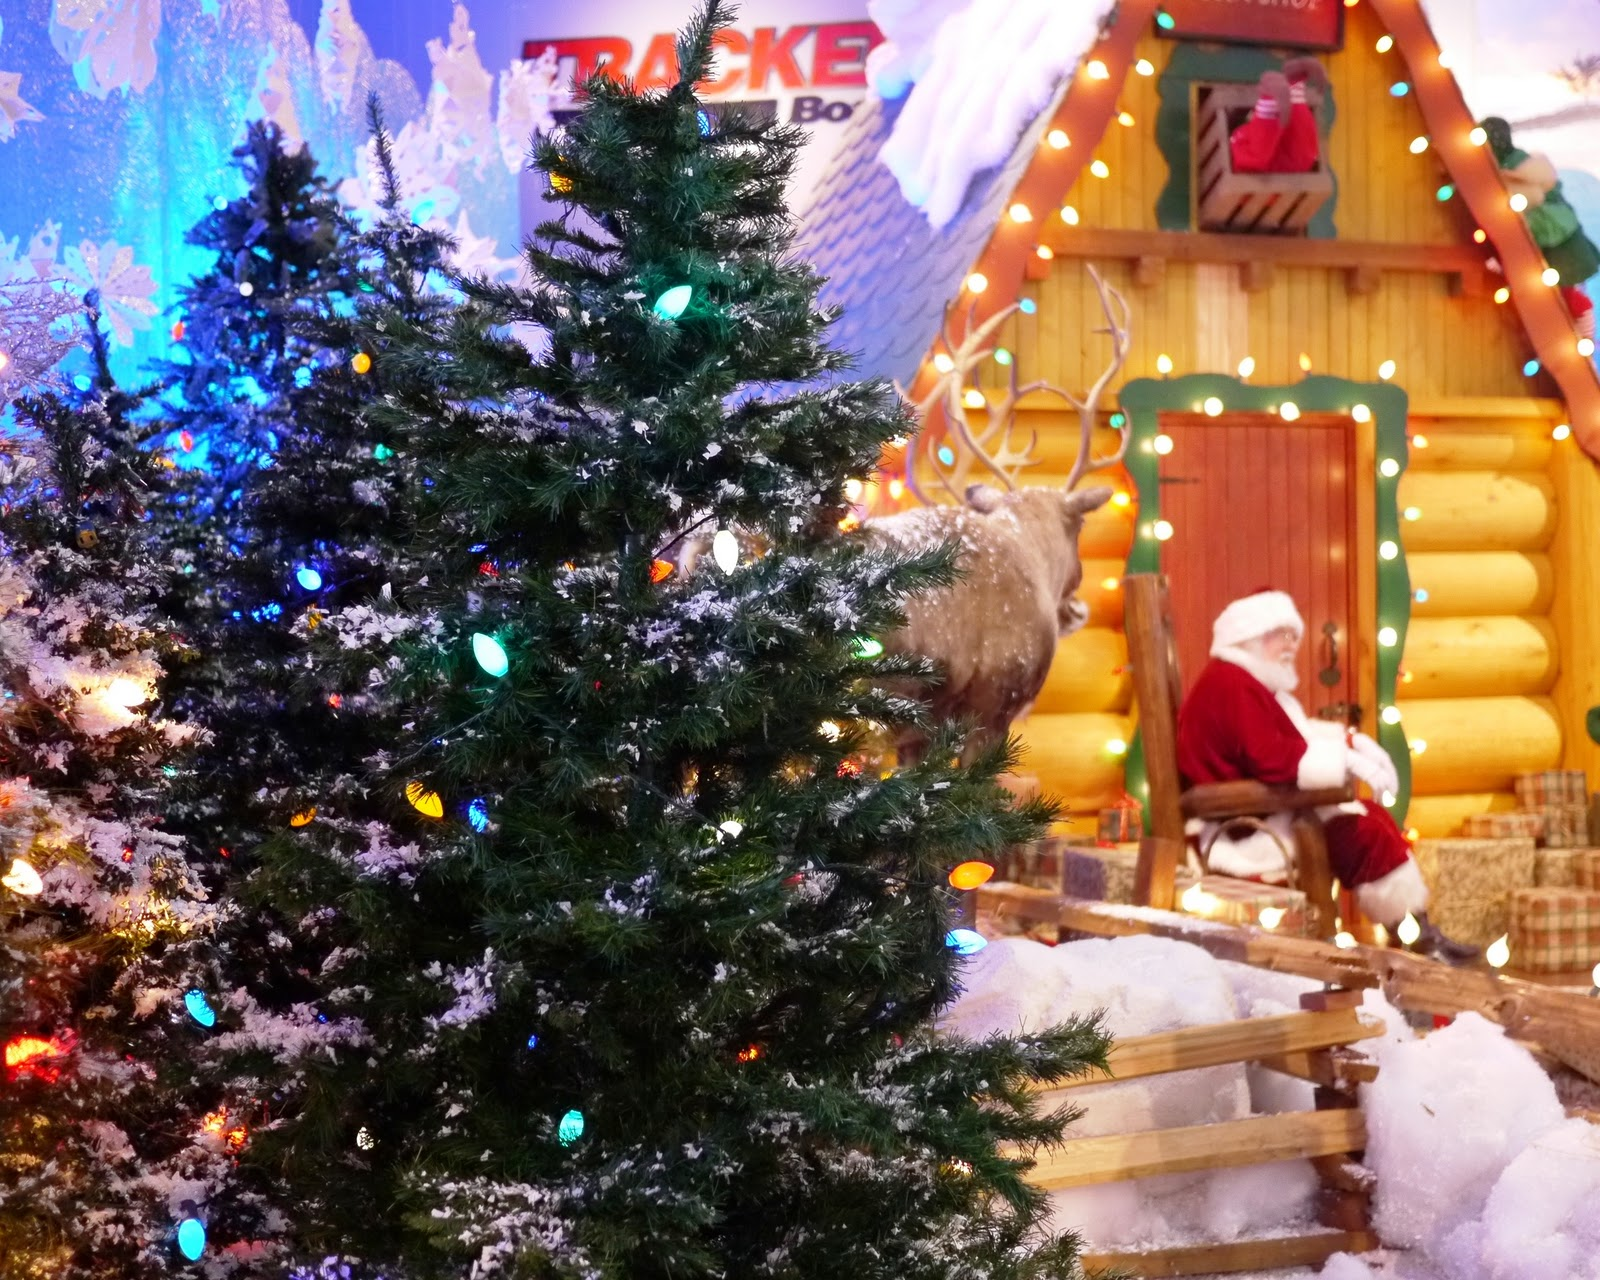 Keeping up with Kids: Bass Pro Shops Santa Land